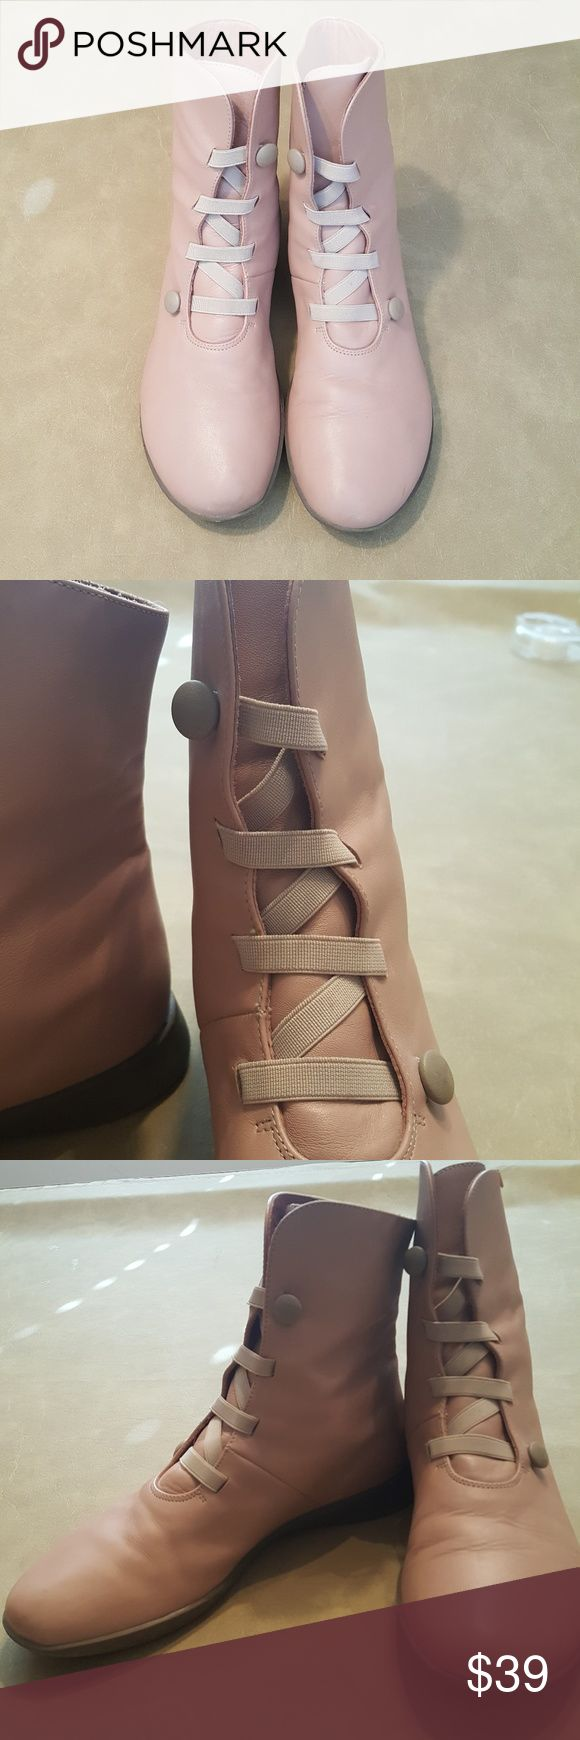 Camper boots Pale pink/taupe Camper boots have an elastic  button closure which adjusts for fit.  Leather upper with rubber sole.  Size 10.  Fun Camper stye t'boot.  Good condition.  Takes a little muscle to pull them on. Camper Shoes Ankle Boots & Booties